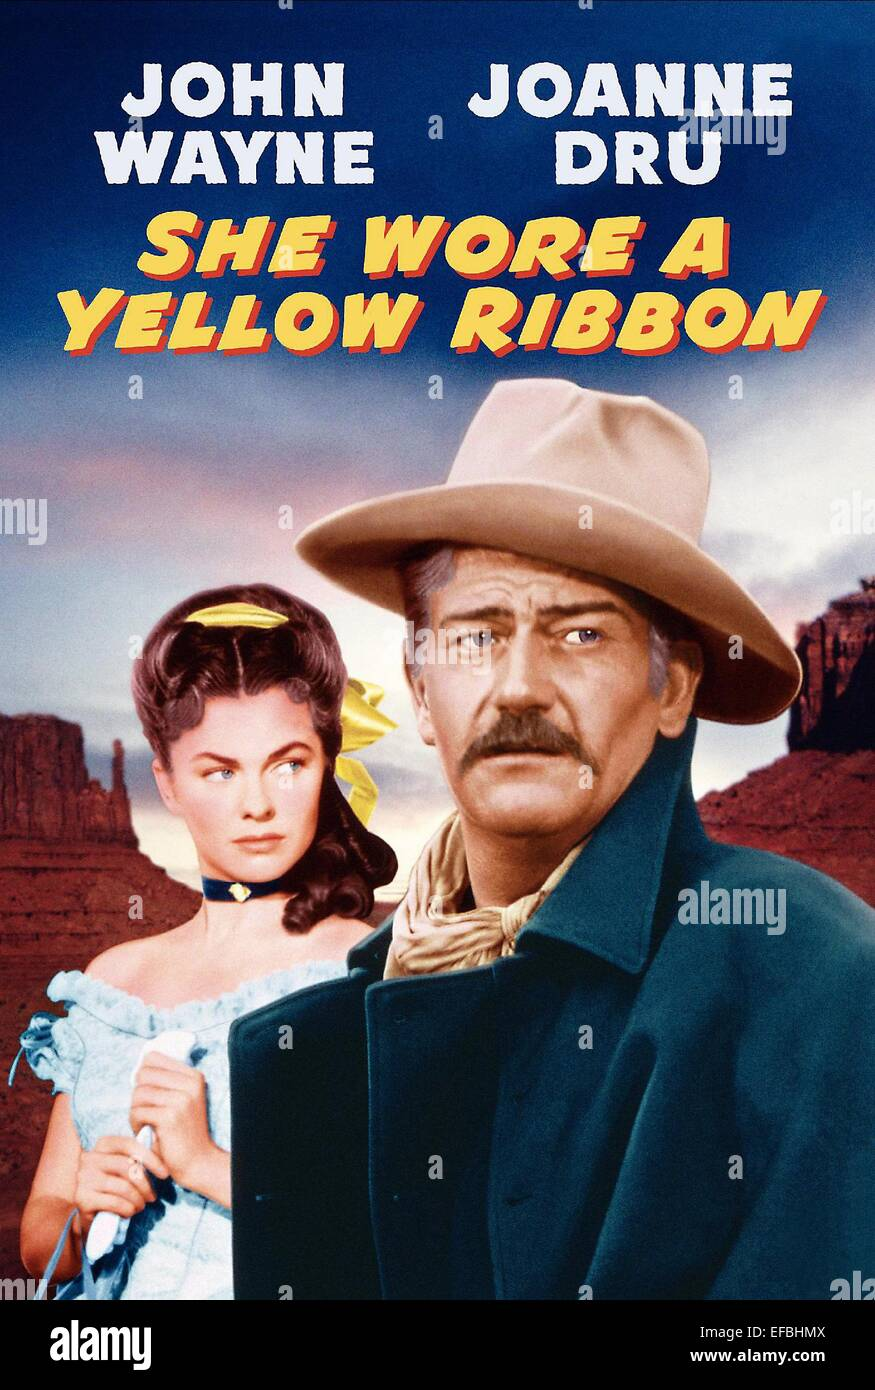 Image result for SHE WORE A YELLOW RIBBON 1949 movie